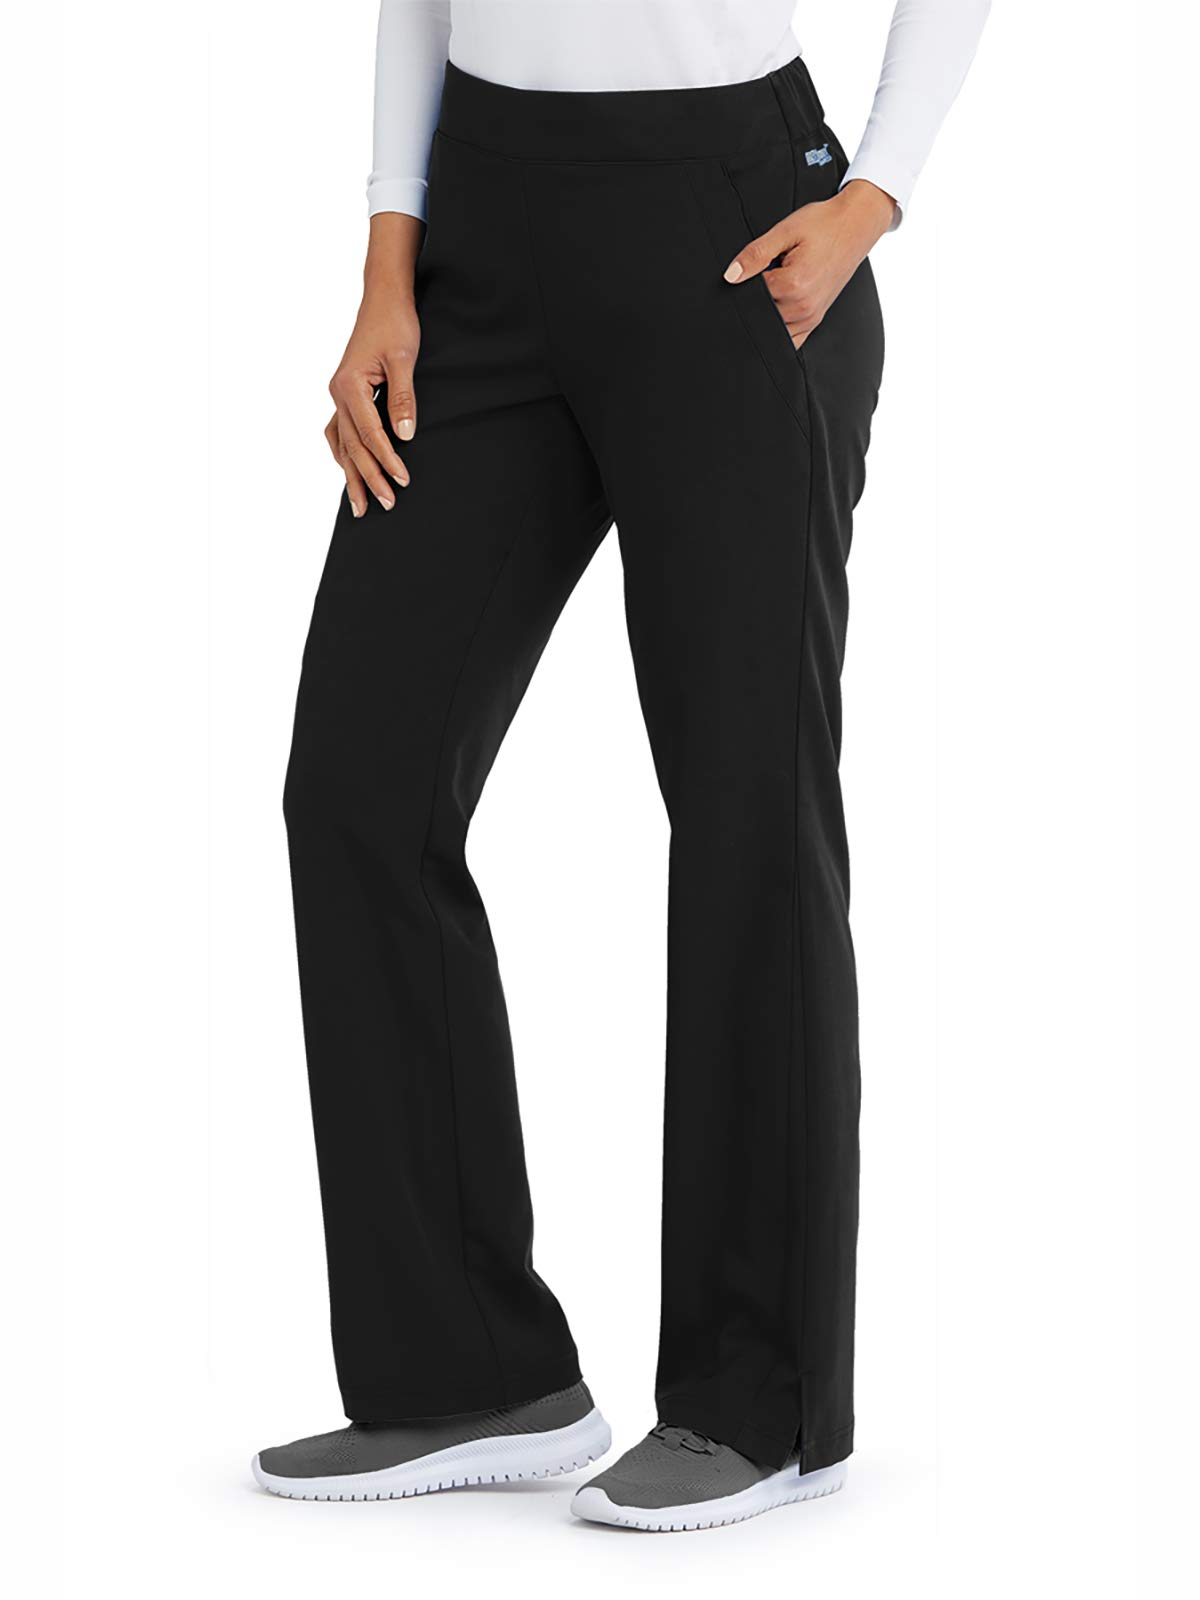 Grey's Anatomy Signature Astra Pant for Women – Super-Soft Medical Scrub Pant